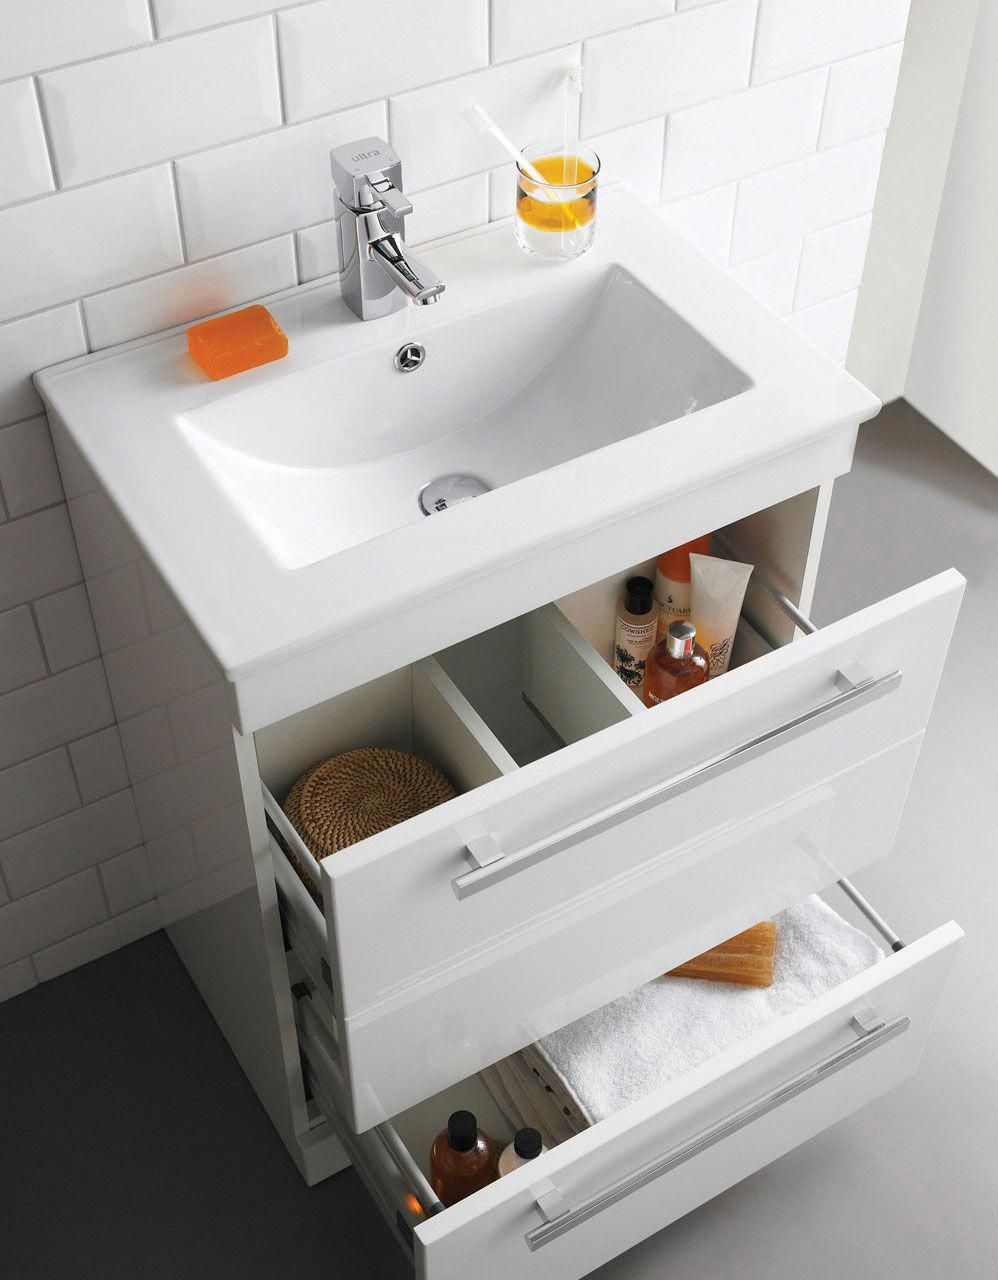 Our Top Tip For Family Bathrooms Invest In Plenty Of Bathroom Storage Furniture To Keep Mess And Clutter At Bay Bathroom Furniture Storage Basin Cabinet Basin